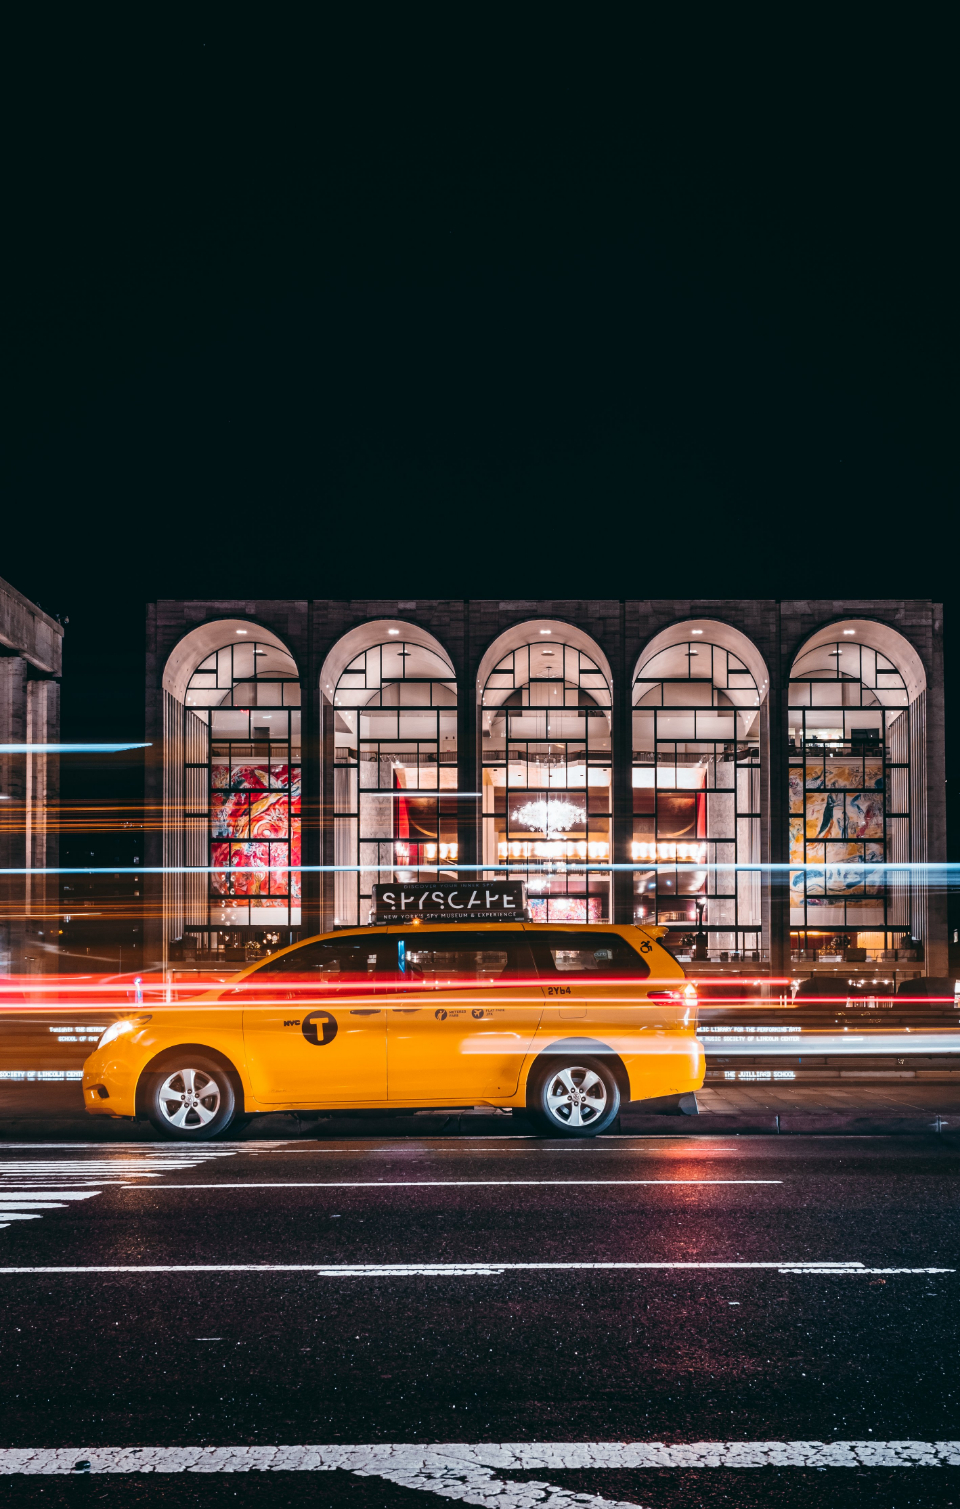 taxi city night cab motion lights blur street building auto urban life yellow car abstract movement driving